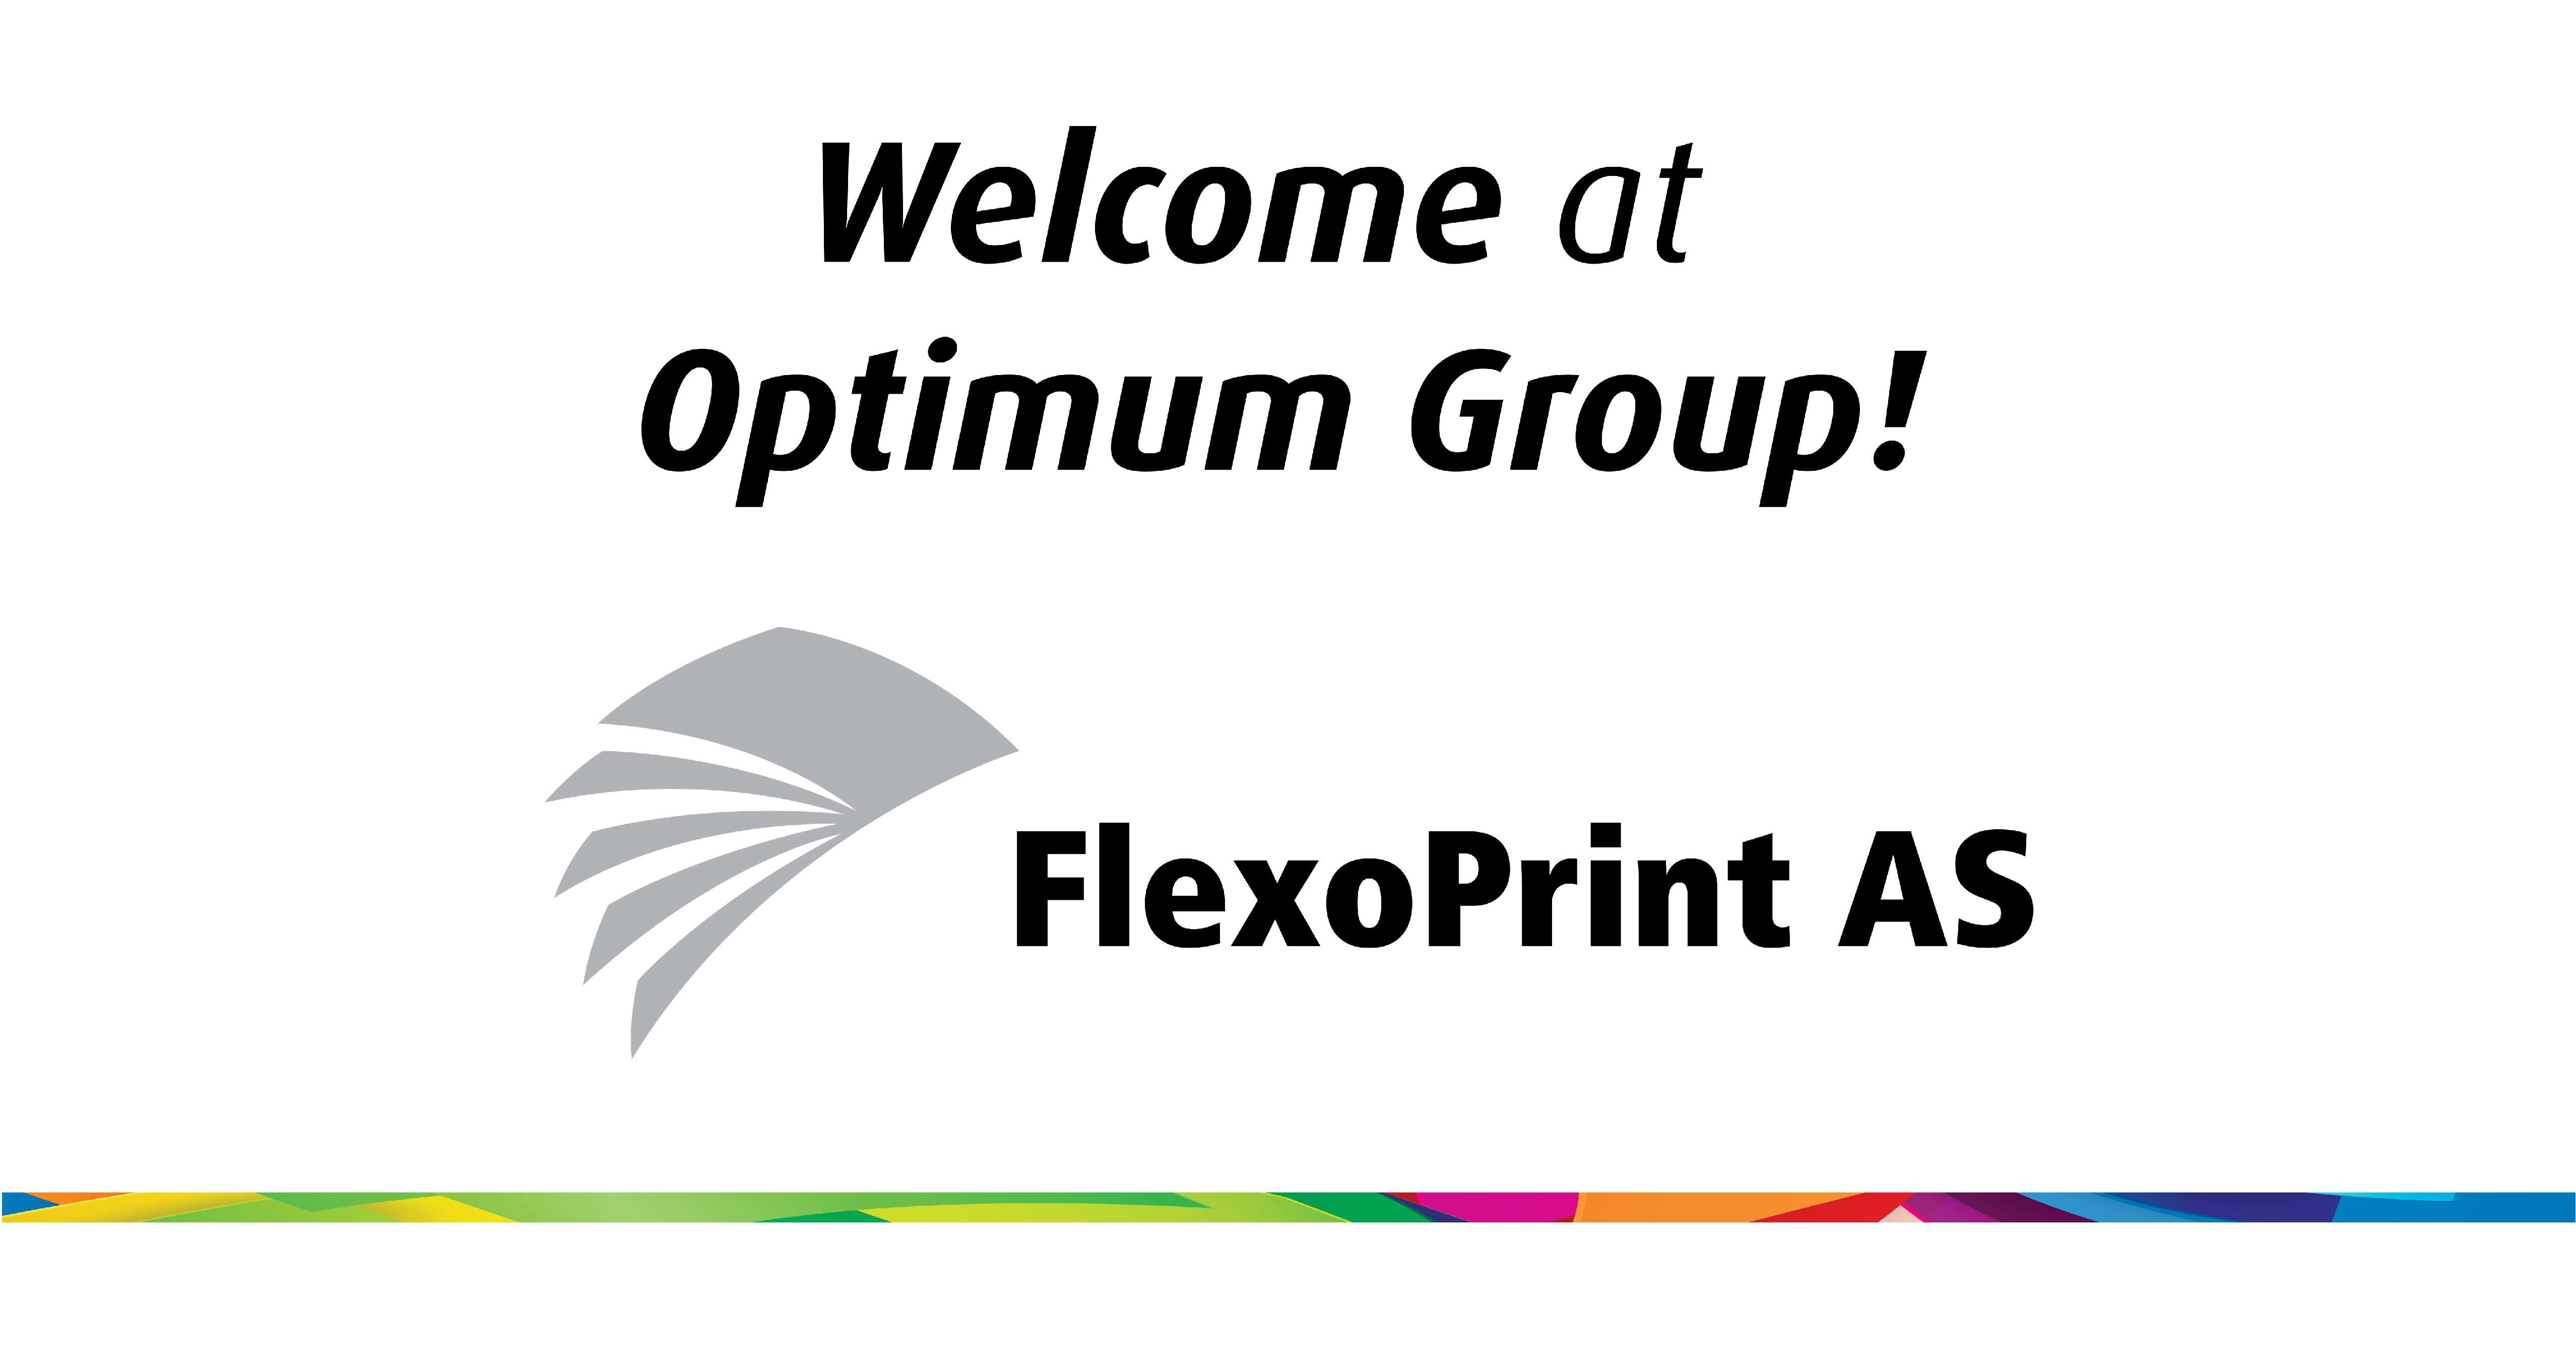 The FlexoPrint Group, a leading producer of self-adhesive labels, becomes part of the Optimum Group.